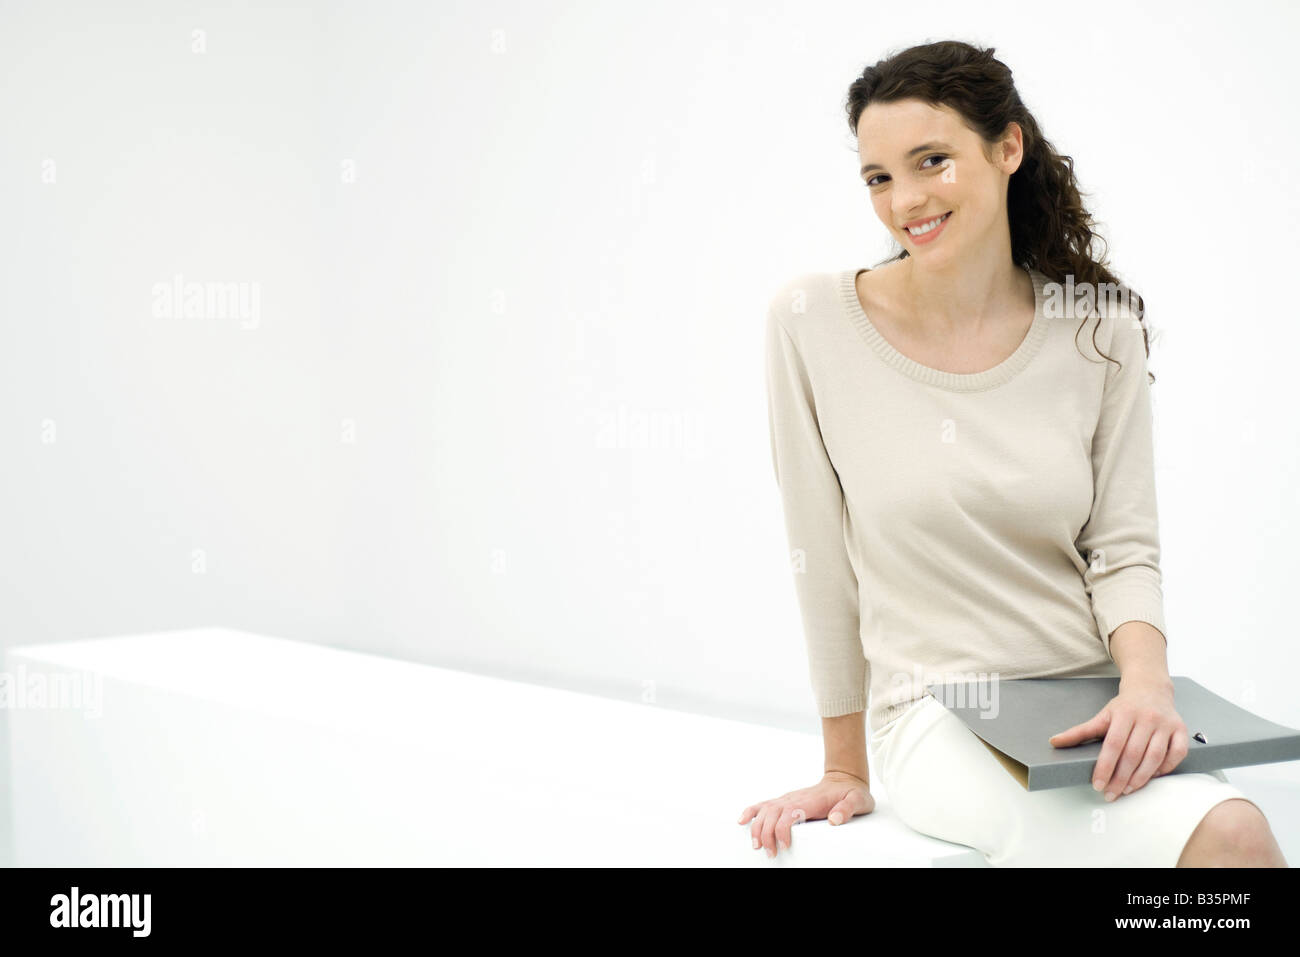 Young professional woman holding binder, smiling at camera - Stock Image